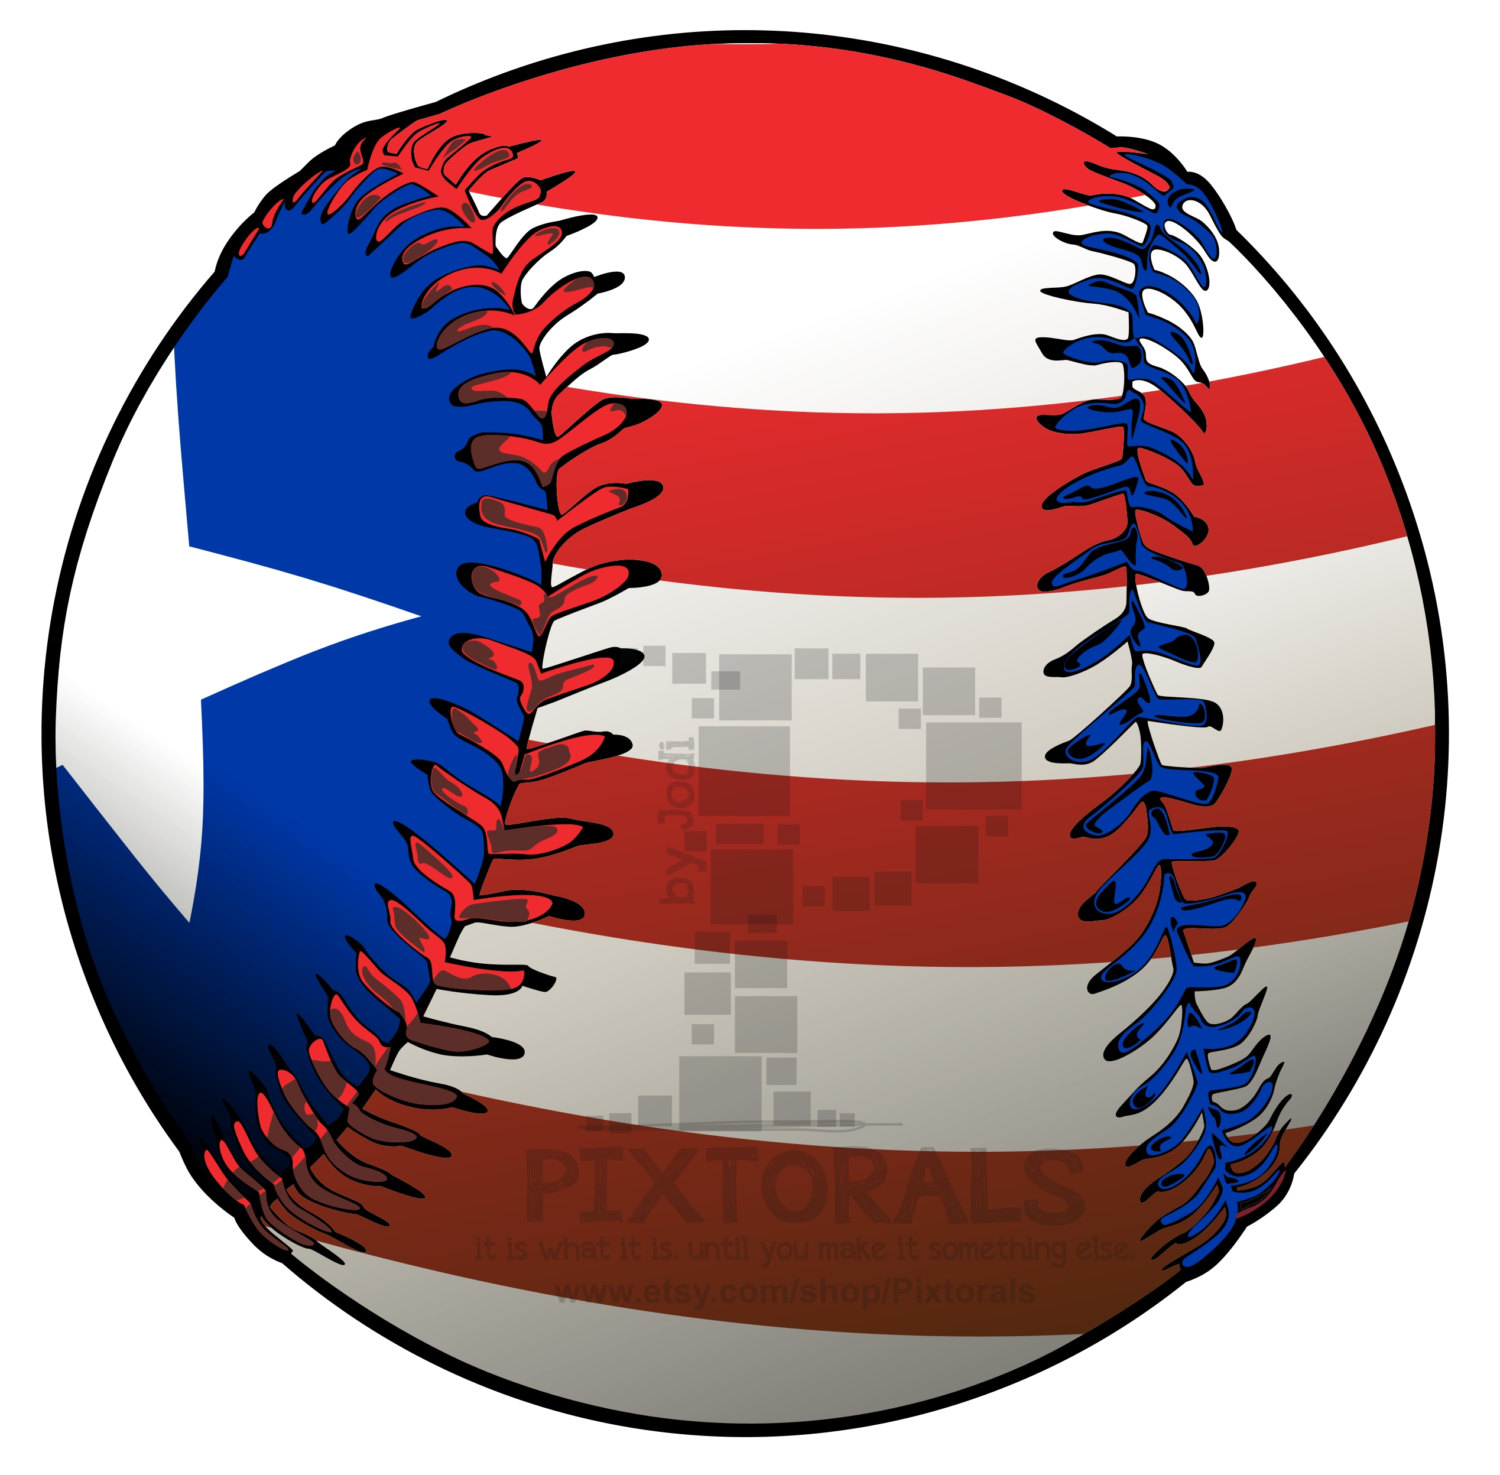 Baseball clipart transparent background. With flag png backgrounds